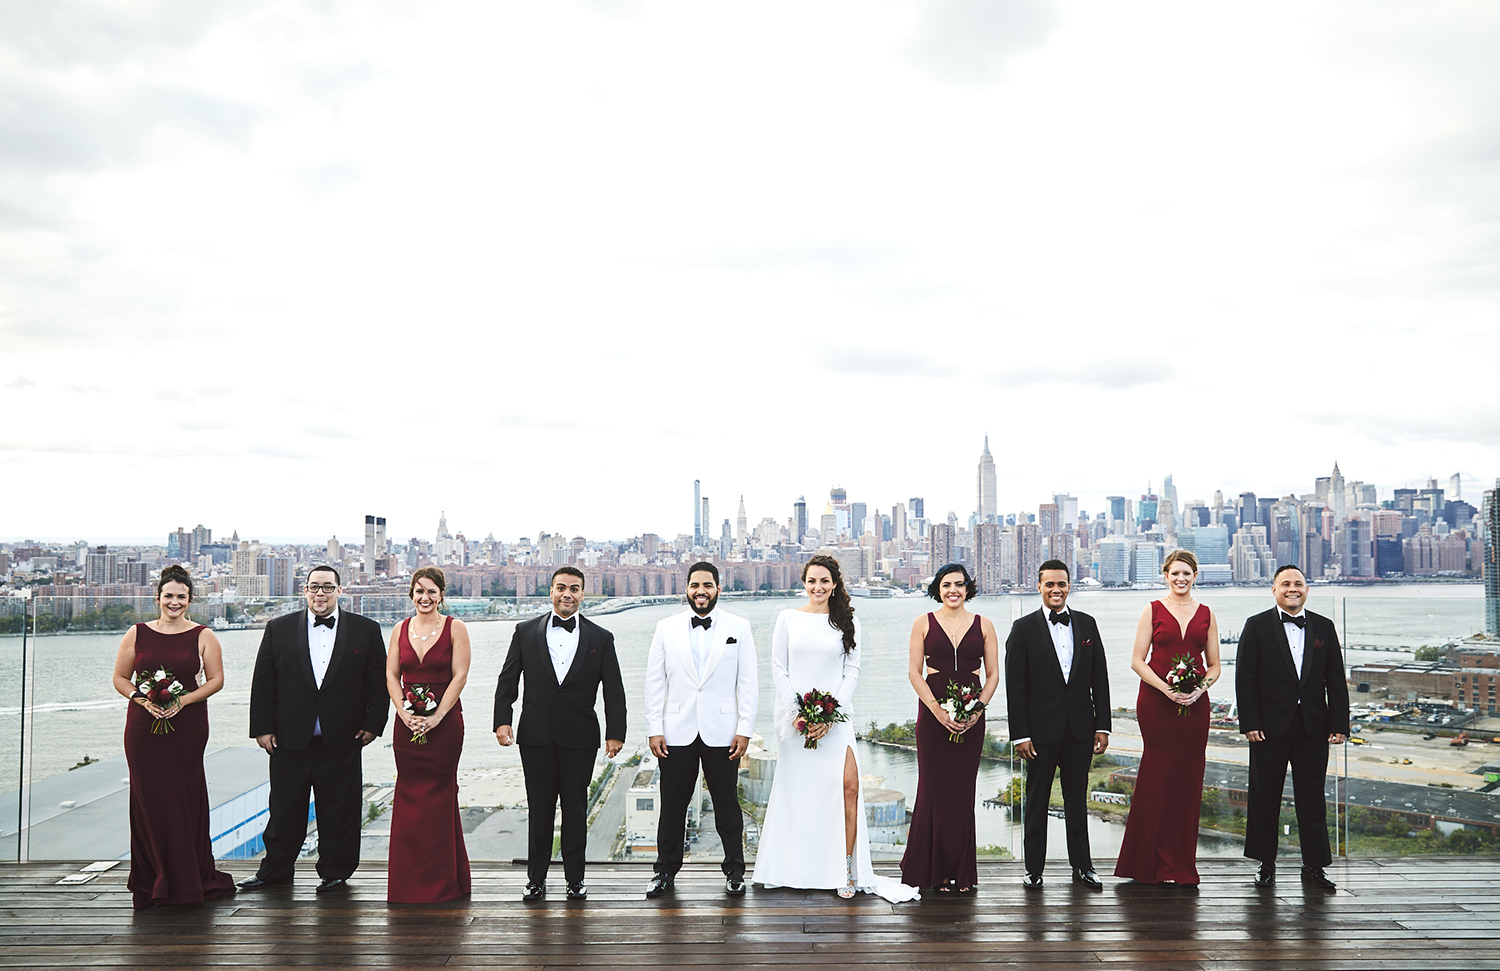 170930_WilliamValeWeddingPhotography_BrooklynWeddingPhotographer_By_BriJohnsonWeddings_0101.jpg